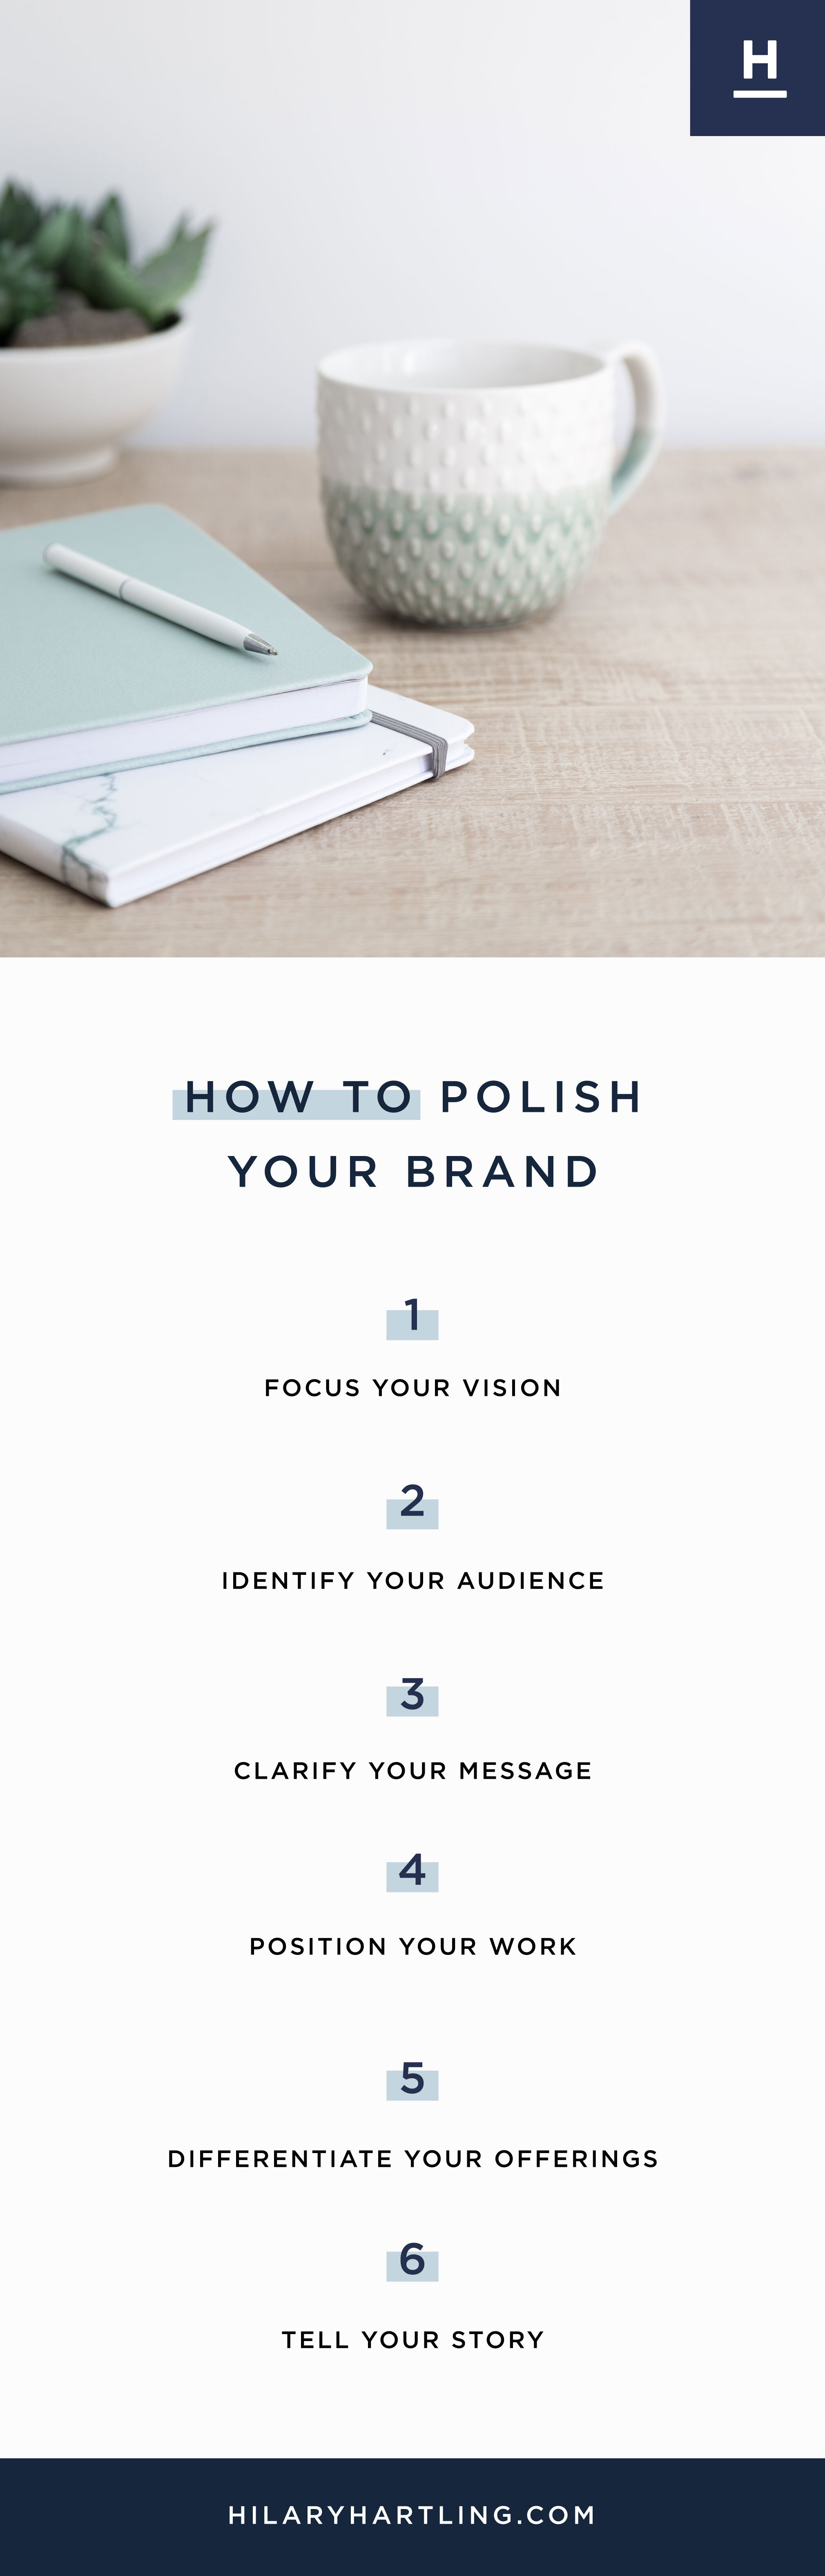 How-To-Polish--Your-Brand2.jpg